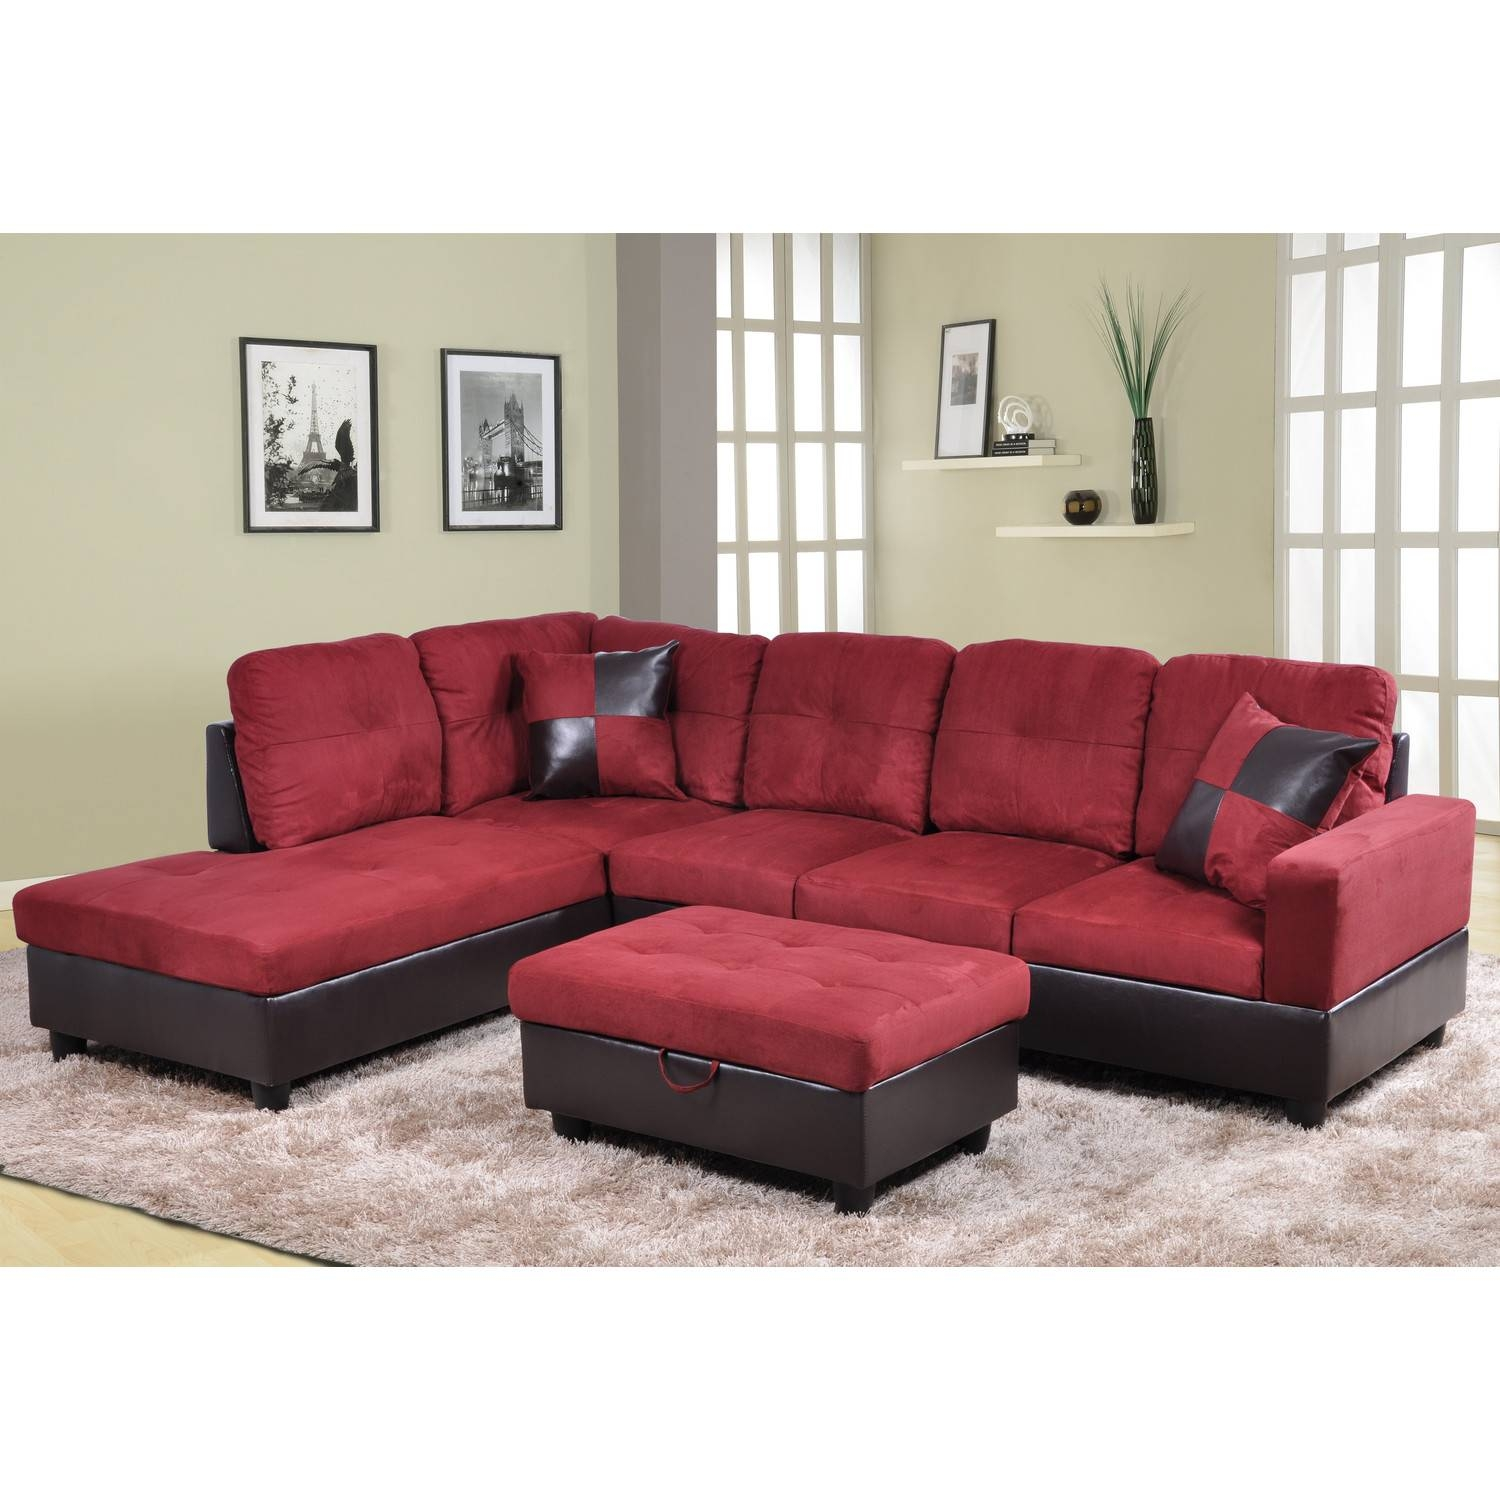 Furniture: Beautiful Sectional Sofas Cheap For Living Room for Red Microfiber Sectional Sofas (Image 7 of 30)